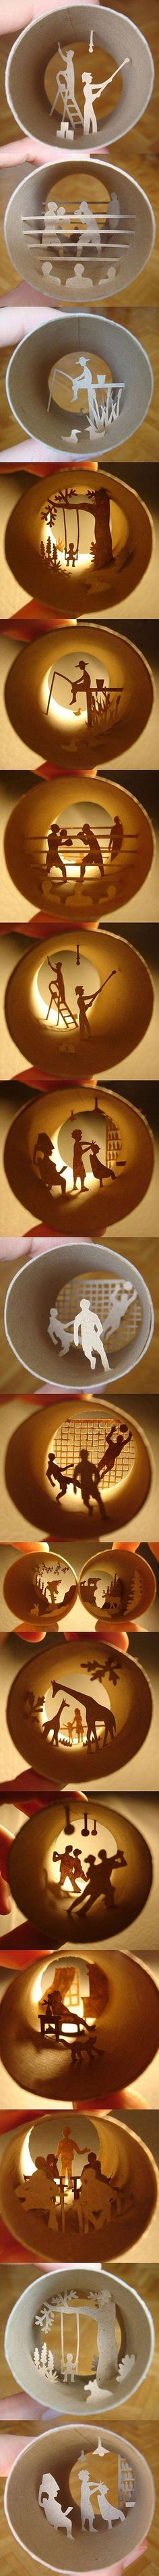 Funny pictures about Toilet paper roll art. Oh, and cool pics about Toilet paper roll art. Also, Toilet paper roll art photos. Toilet Paper Roll Art, Rolled Paper Art, Art Plastique, Paper Cutting, Cut Paper, Art Lessons, Amazing Art, Cool Art, Art Projects